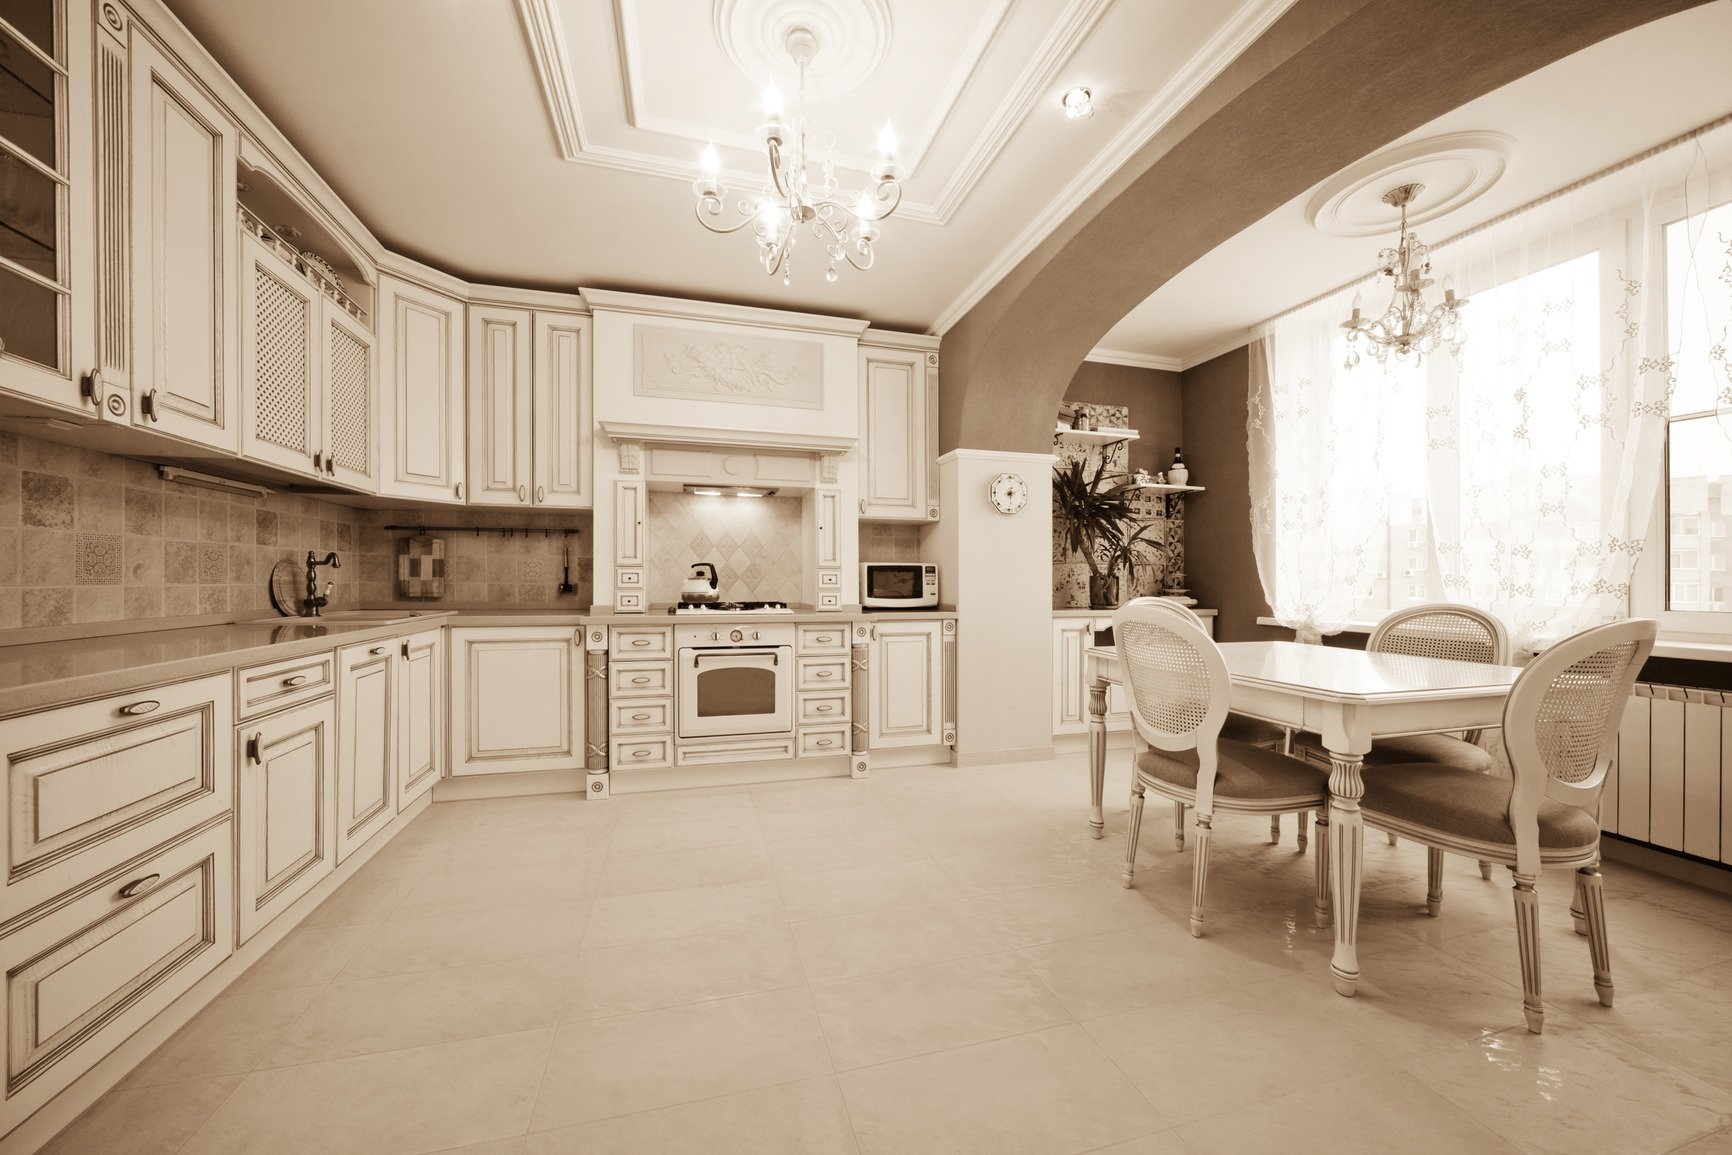 bc custom kitchen cabinets vancouver north burnaby lower download. beautiful ideas. Home Design Ideas